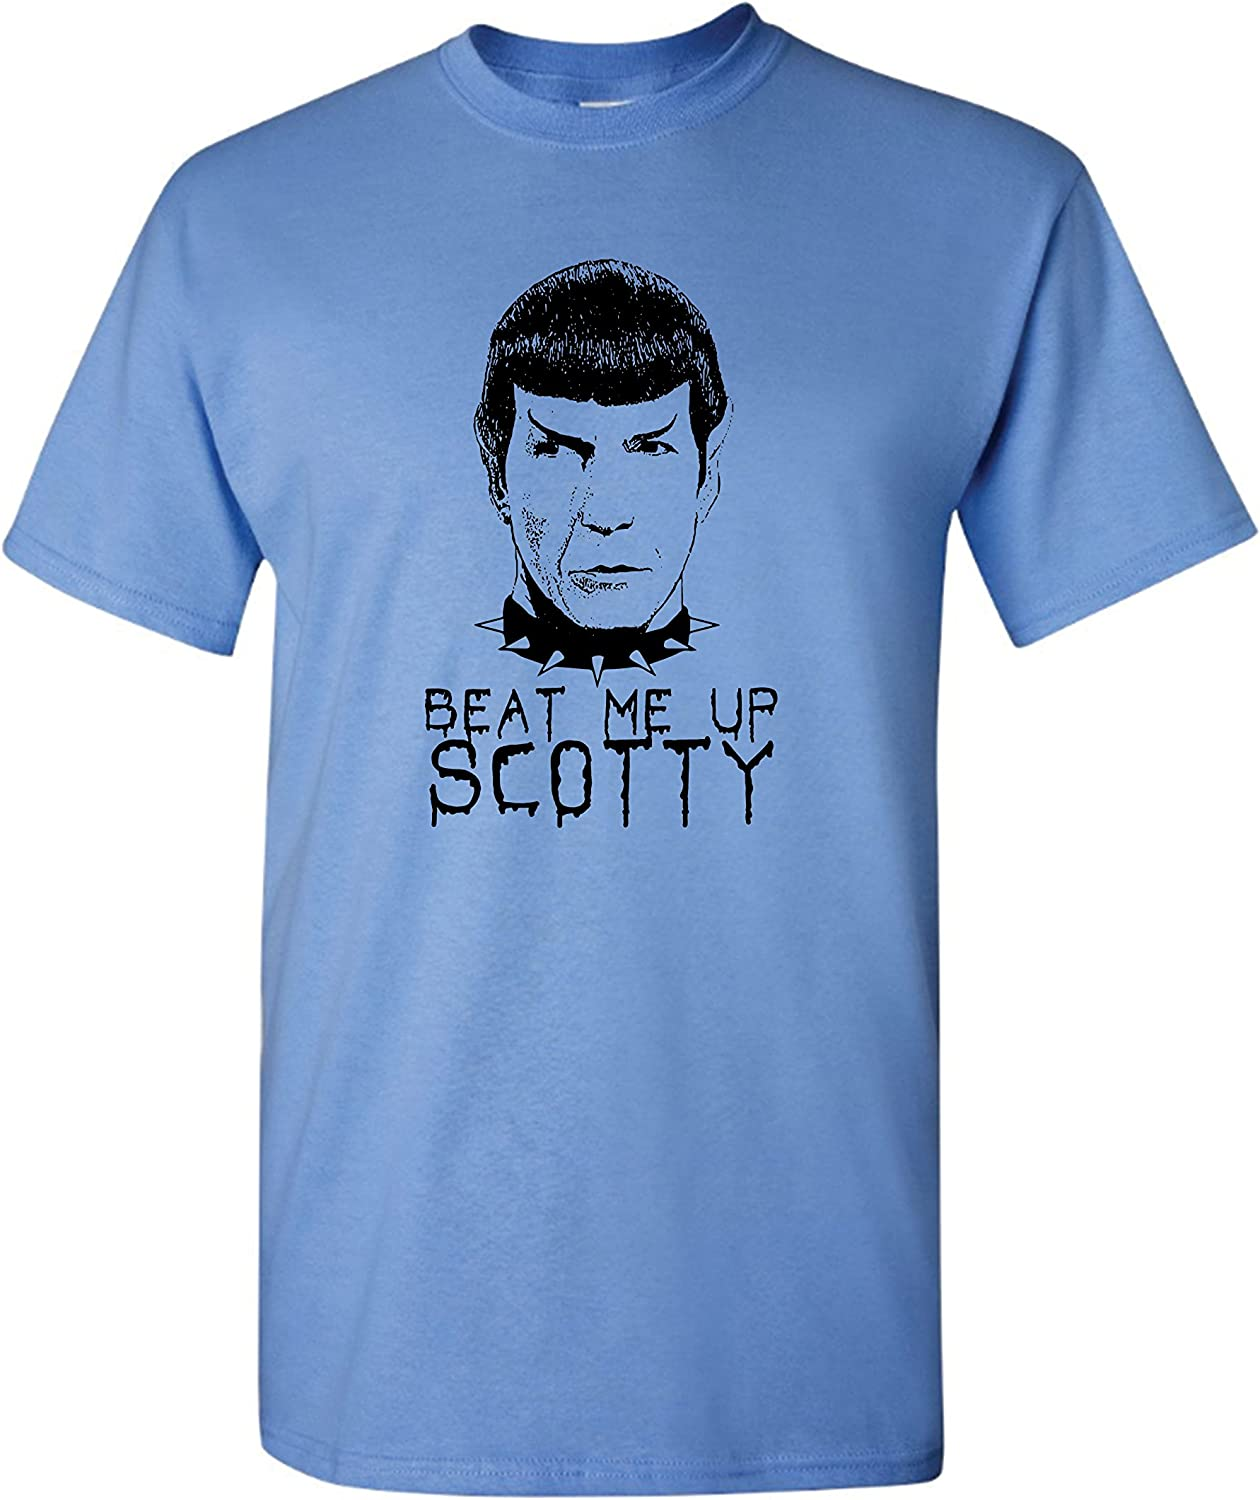 Spock On T-Shirt 100/% Cotton Spoof Funny Rock On